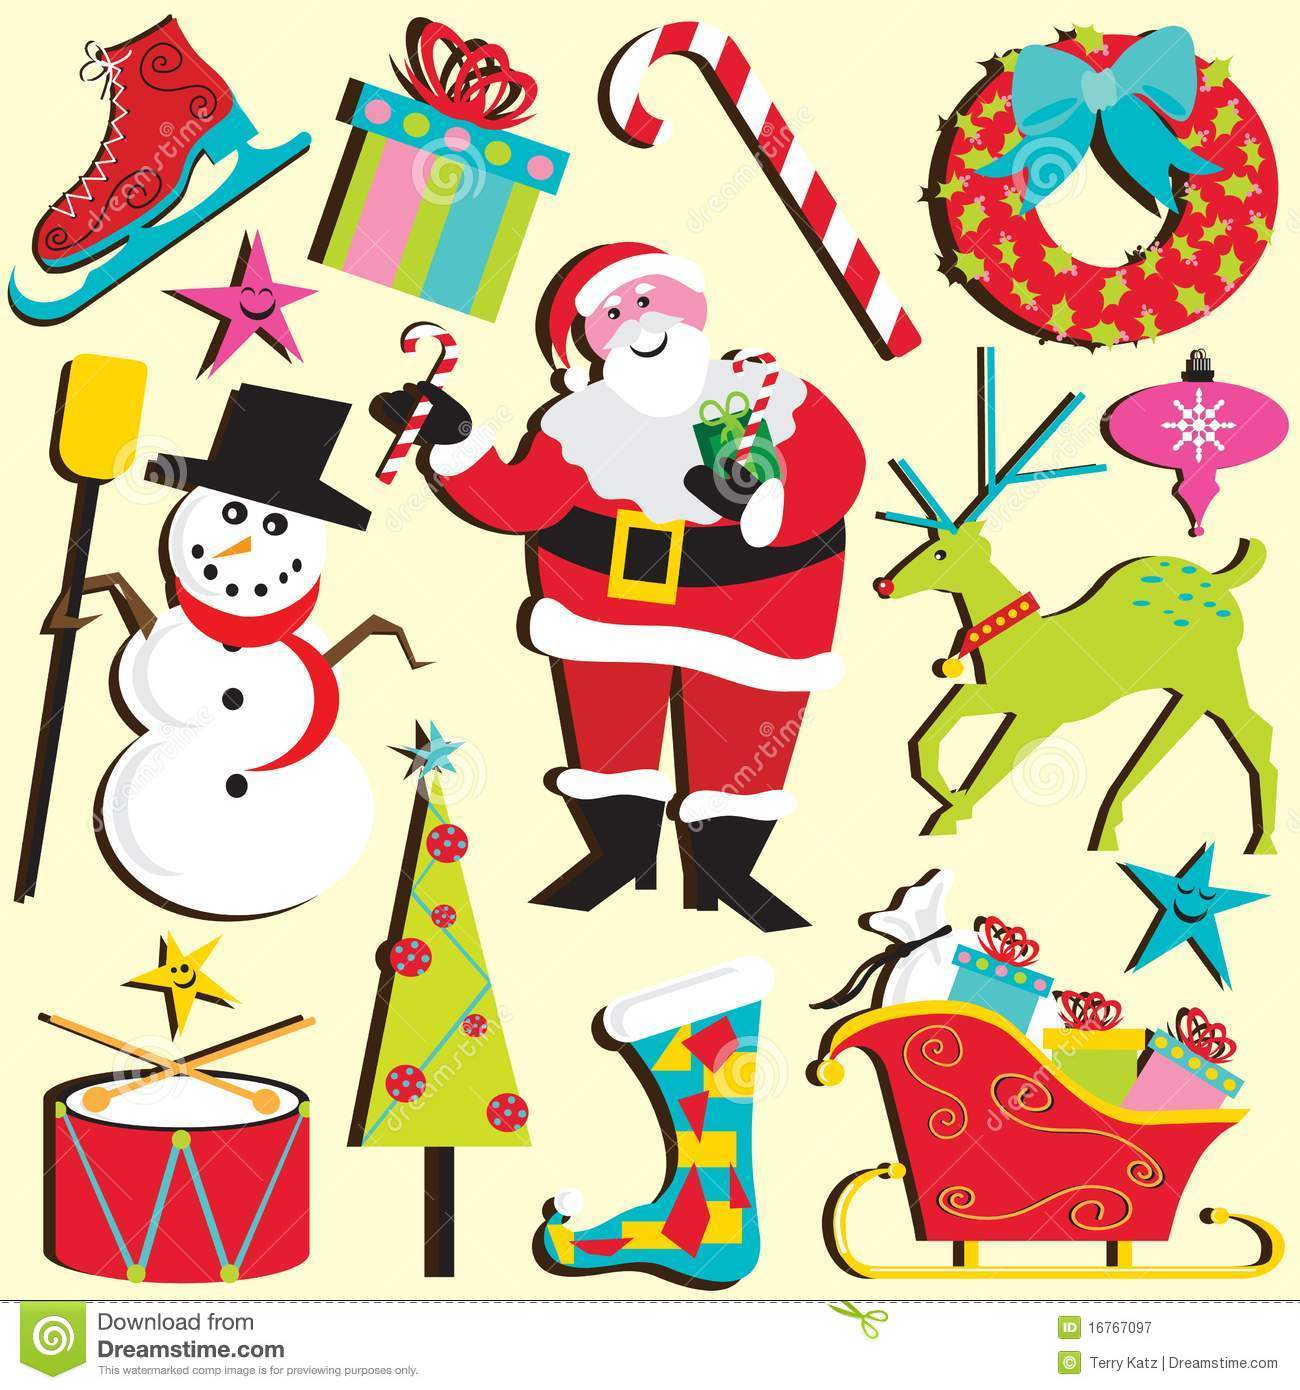 Lustige Weihnachtsmotive Clipart.Weihnachtssgruss Clipart 20 Free Cliparts Download Images On